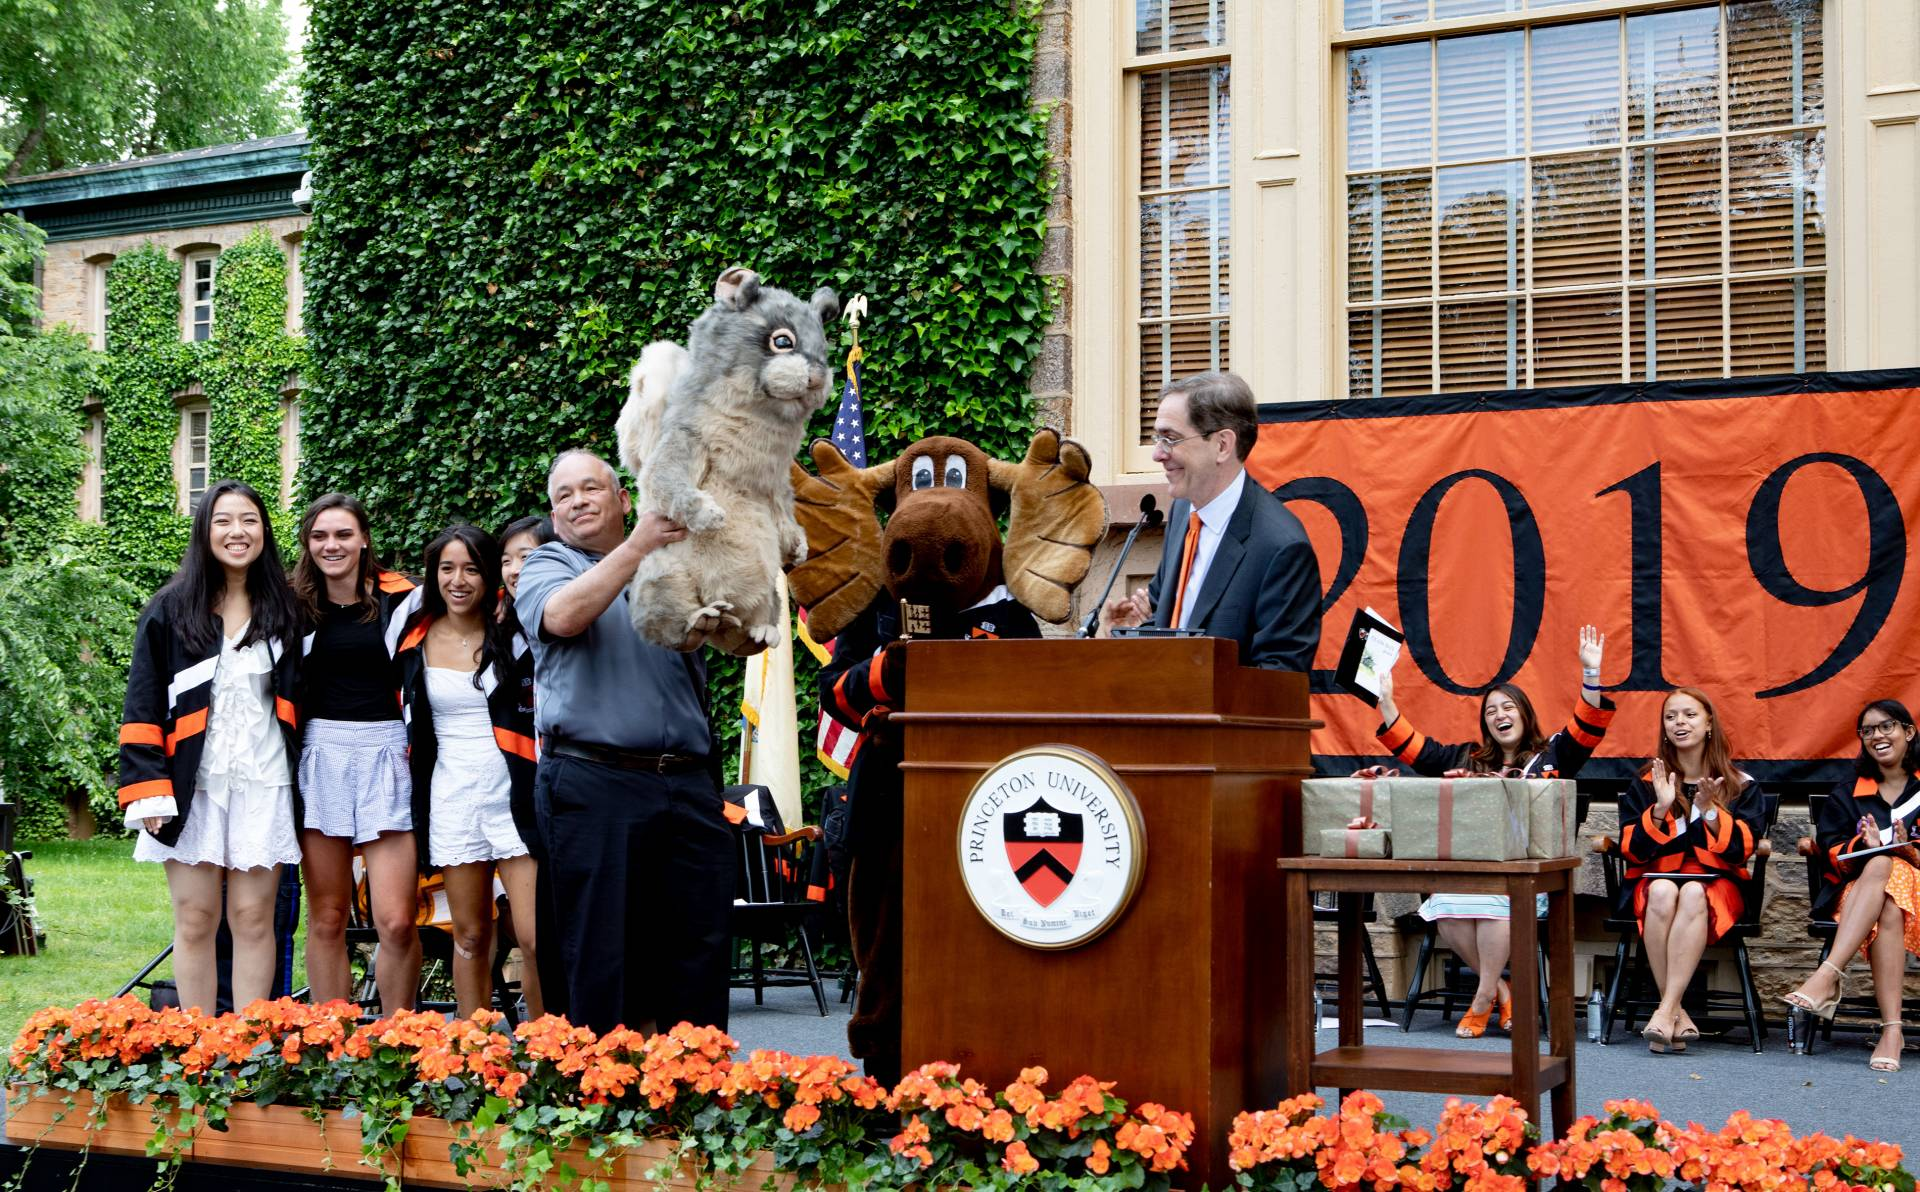 President Christopher L. Eisgruber presents a stuffed squirrel to the class